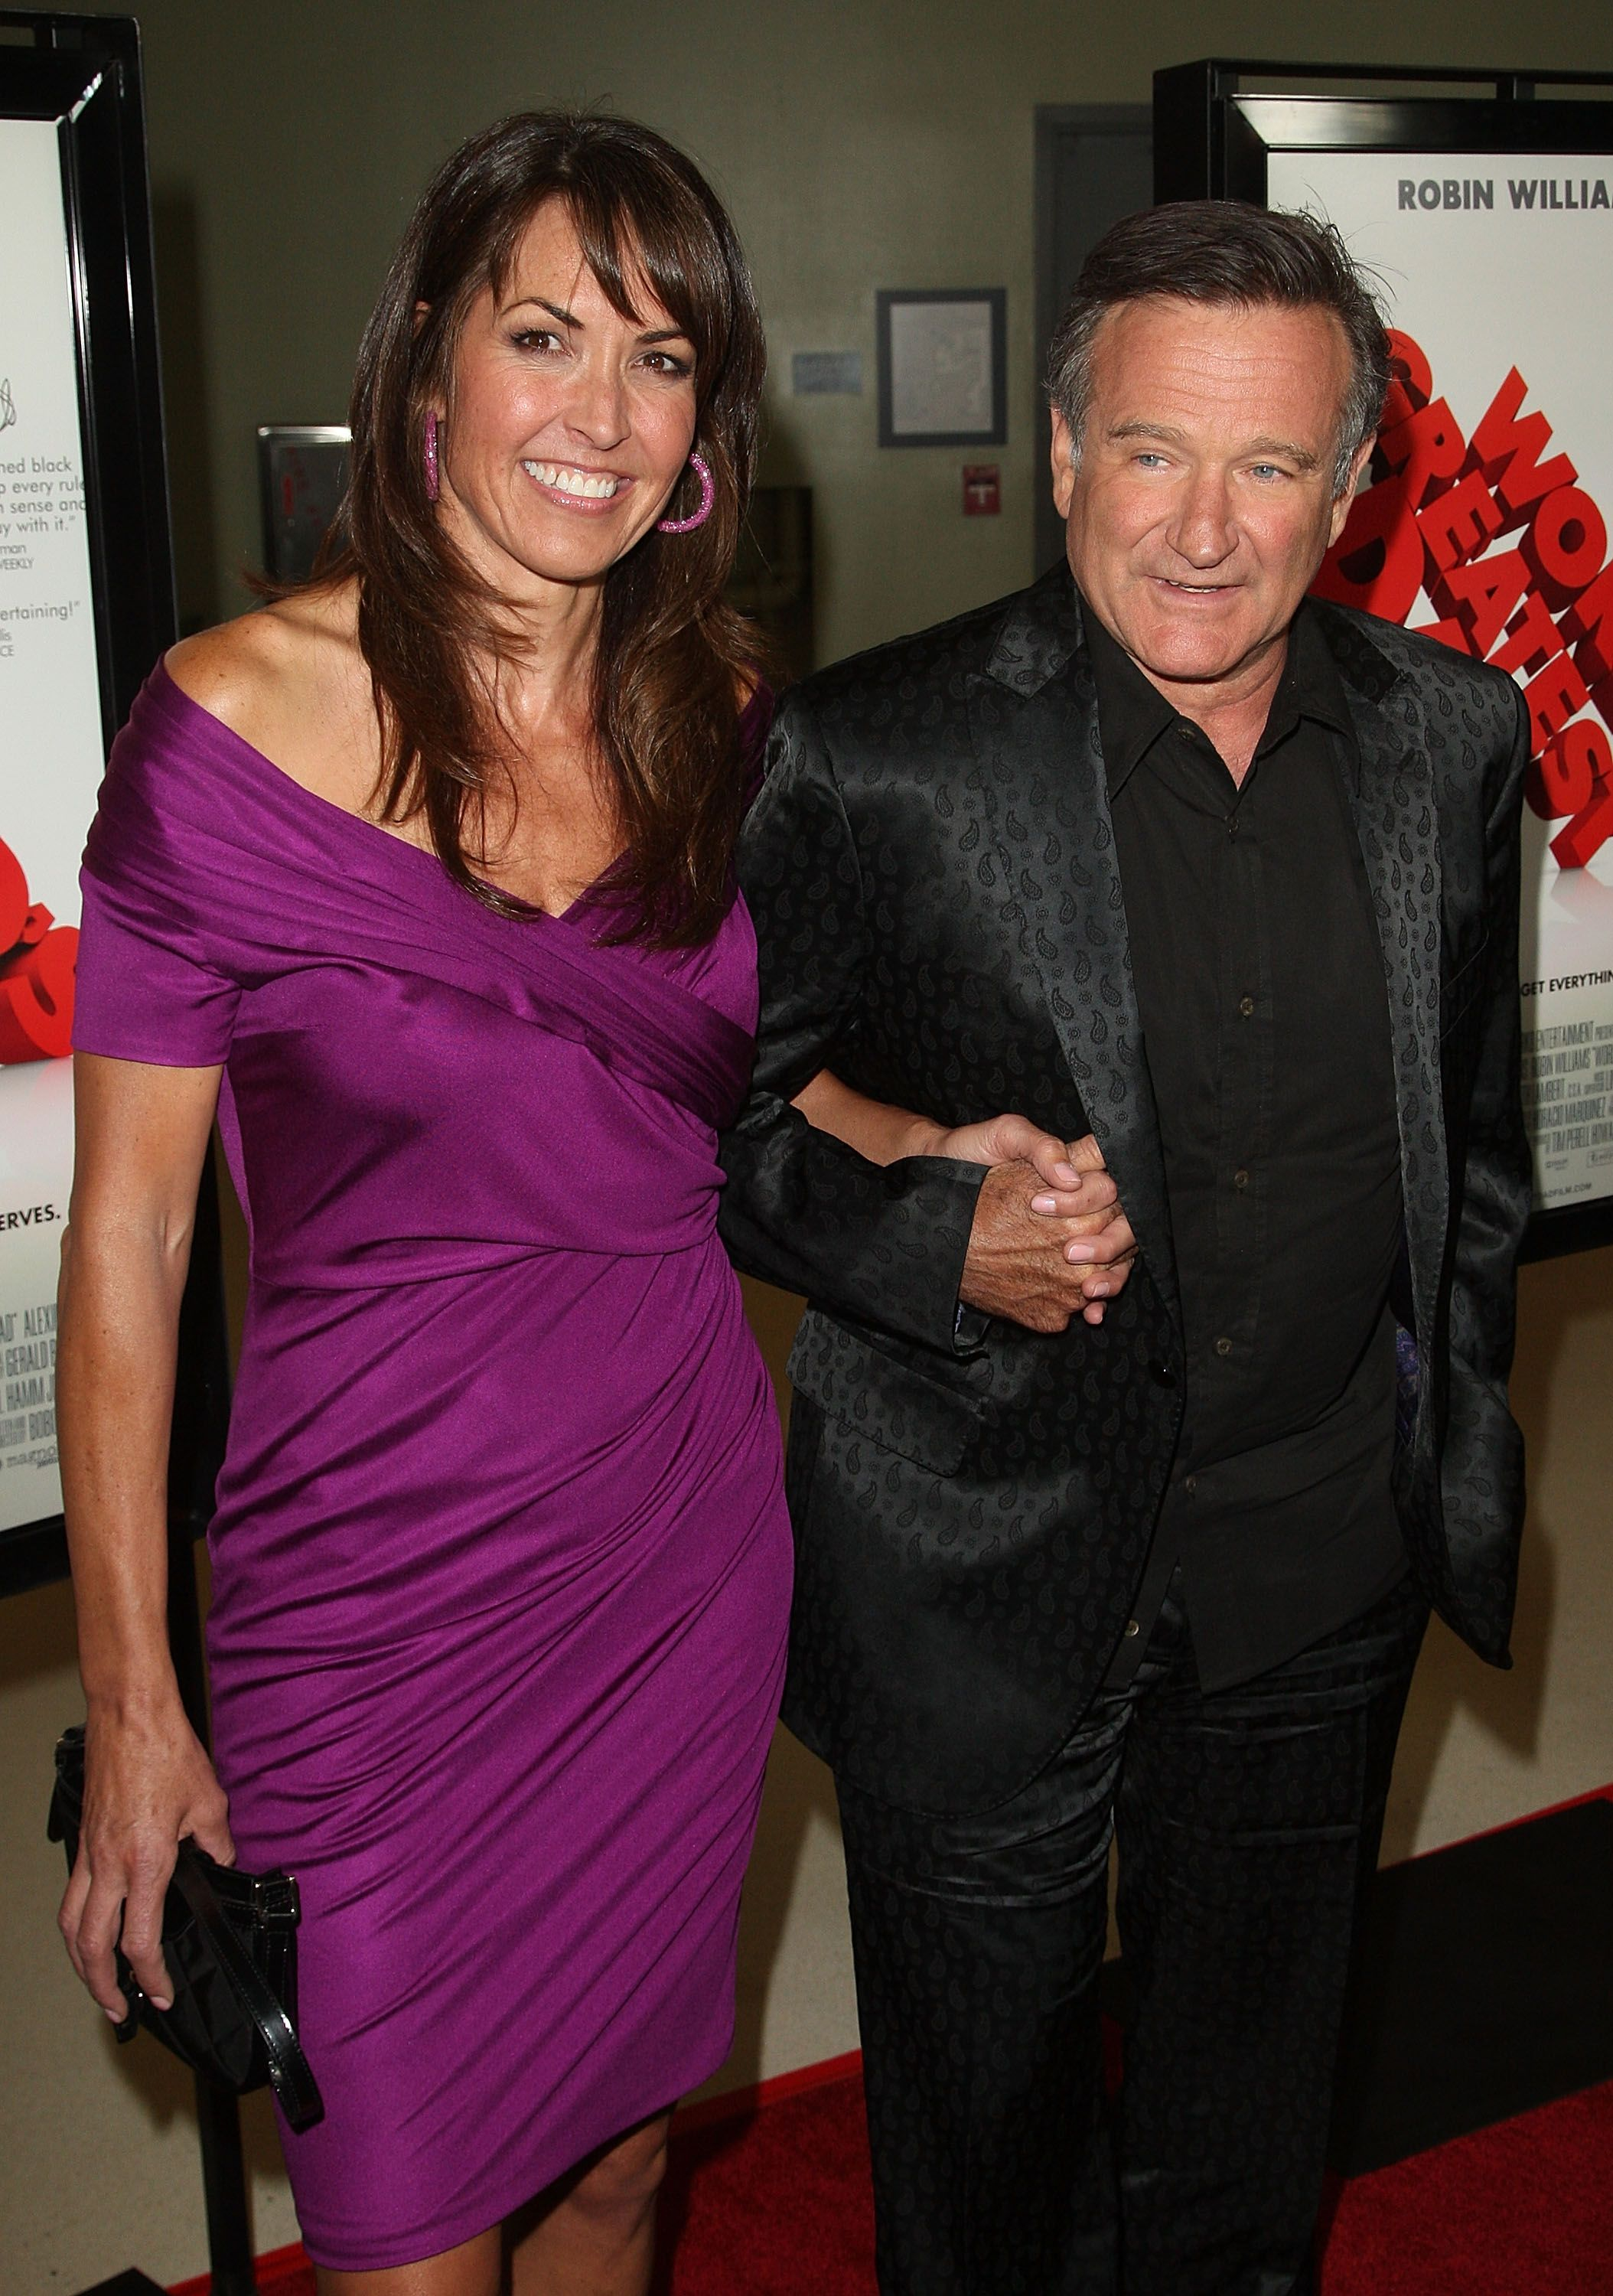 Robin Williams and Susan Schneider pose at the premiere of Magnolia Pictures' 'World's Greatest Dad' at The Landmark Theater on August 13, 2009 | Photo: Getty Images